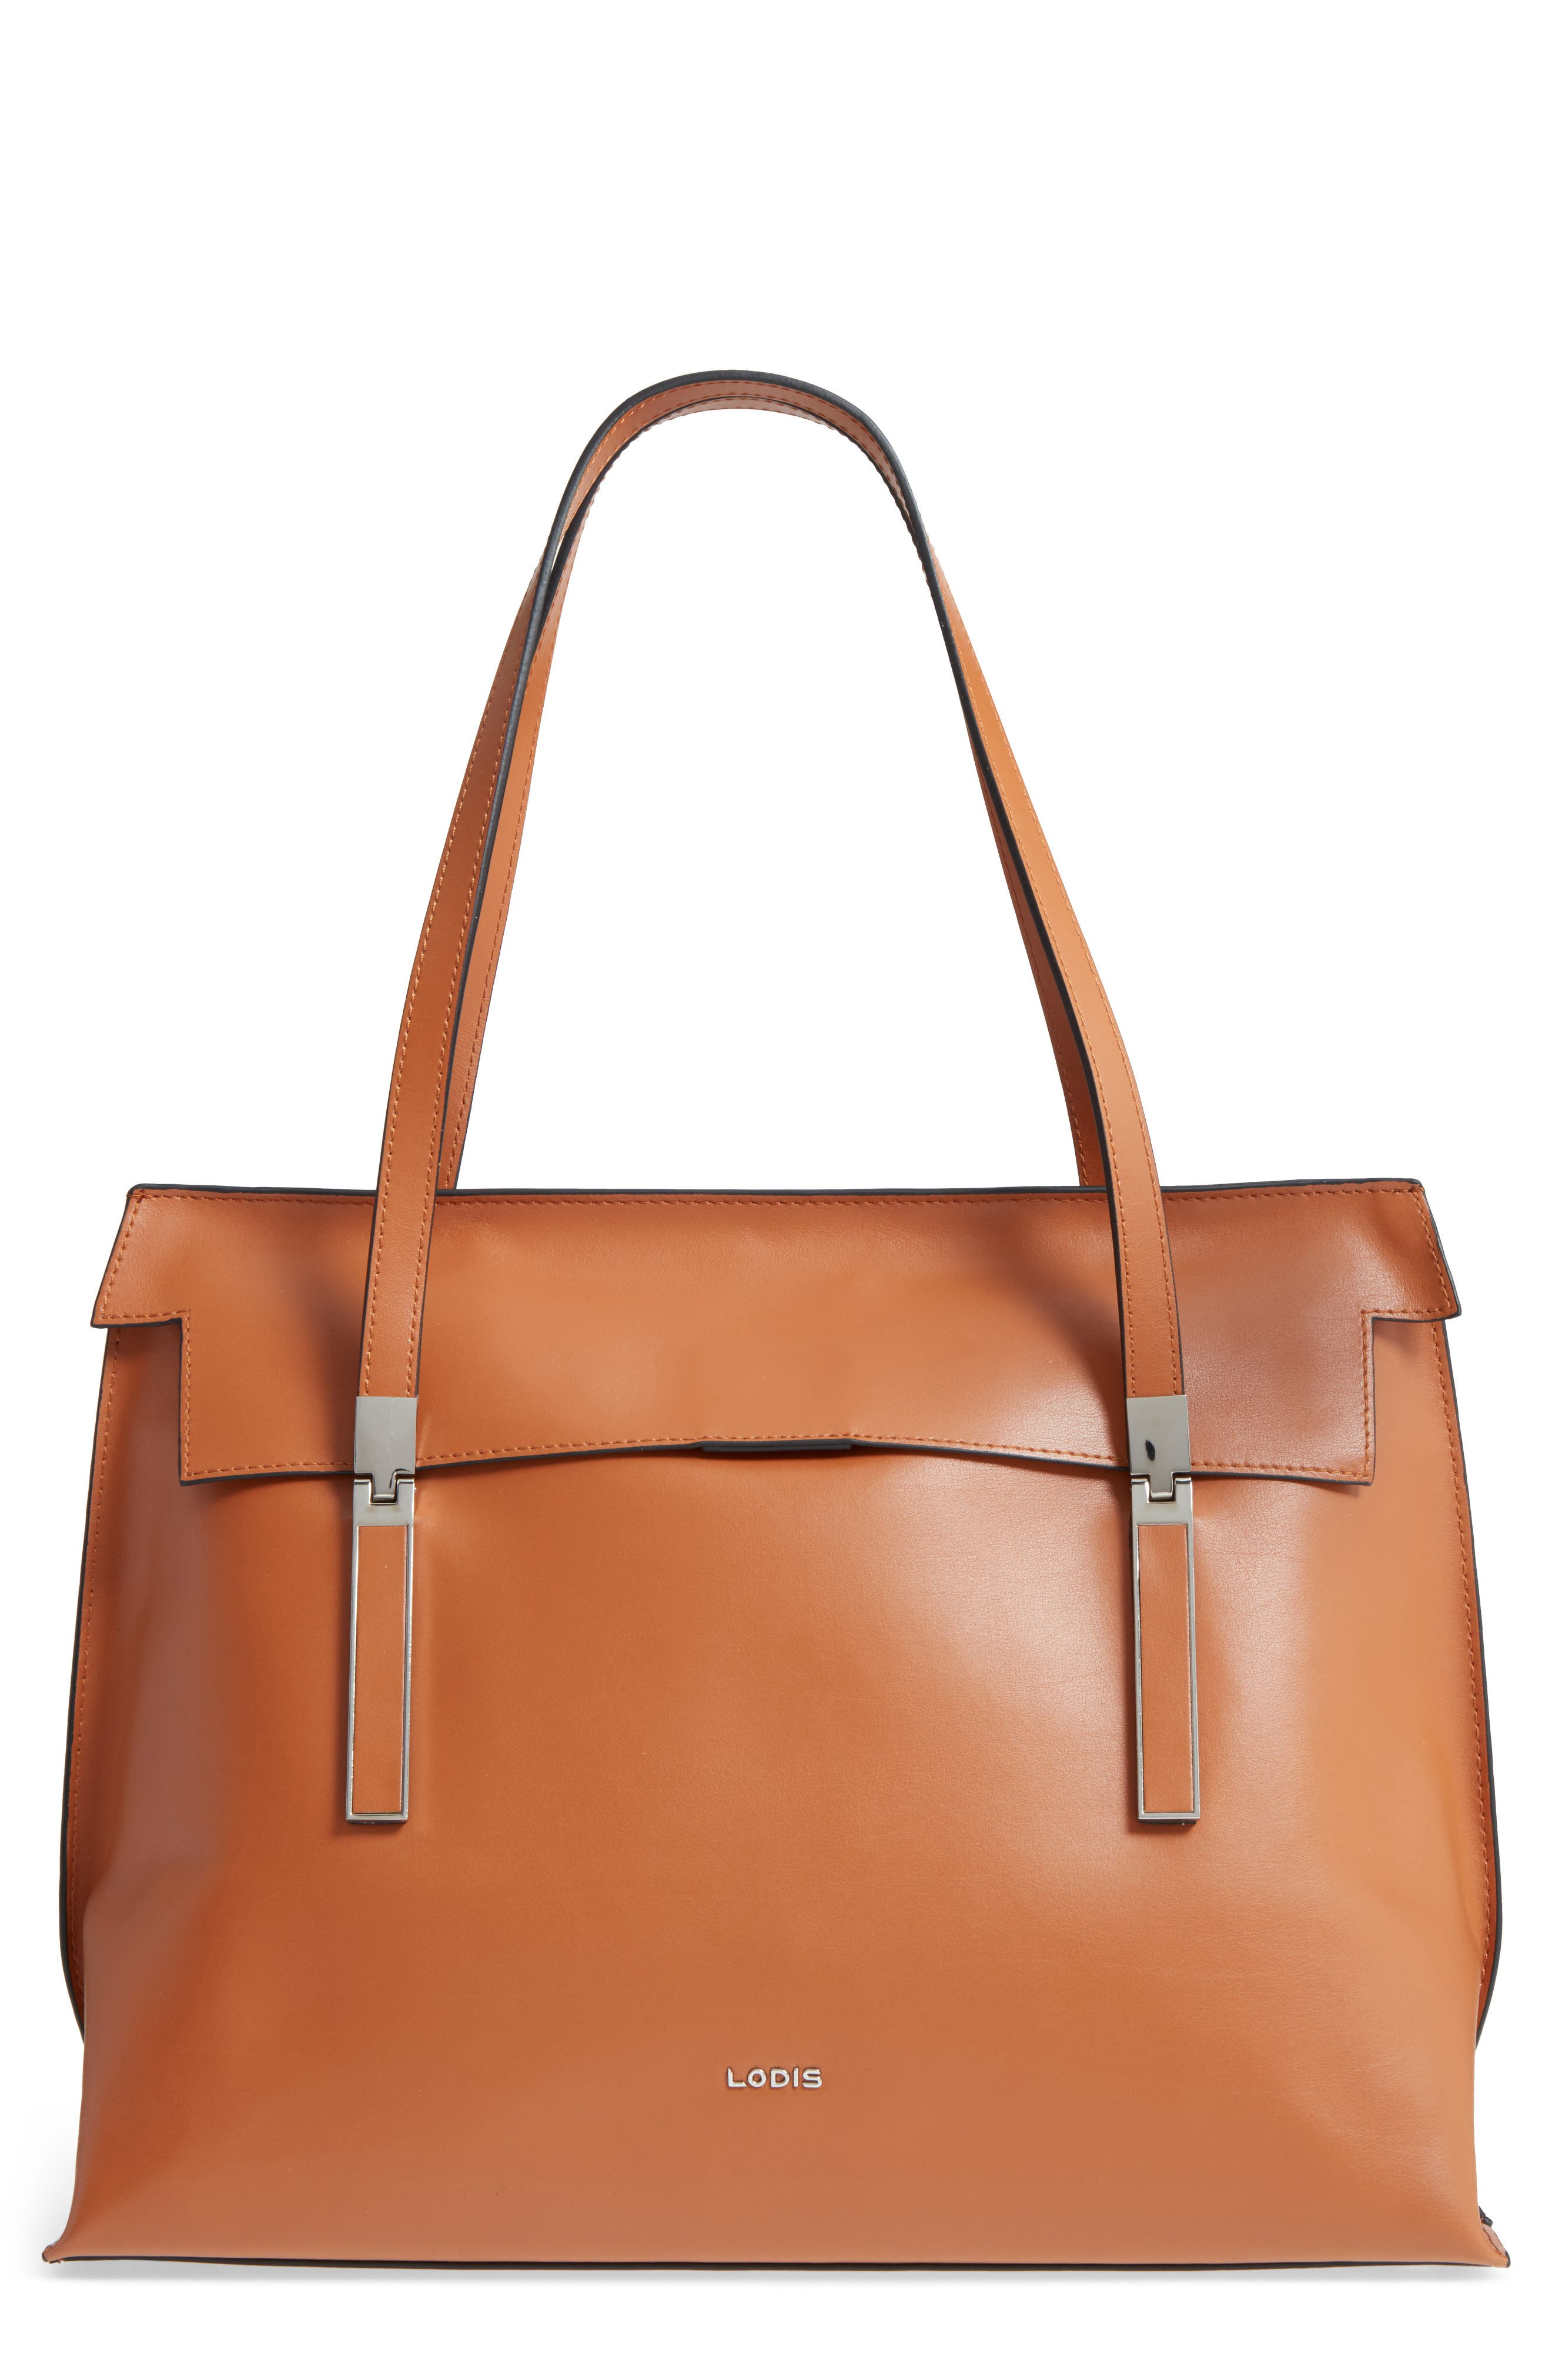 LODIS Silicon Valley - Lorrain RFID Leather Satchel,                             Main thumbnail 1, color,                             Toffee/ Taupe